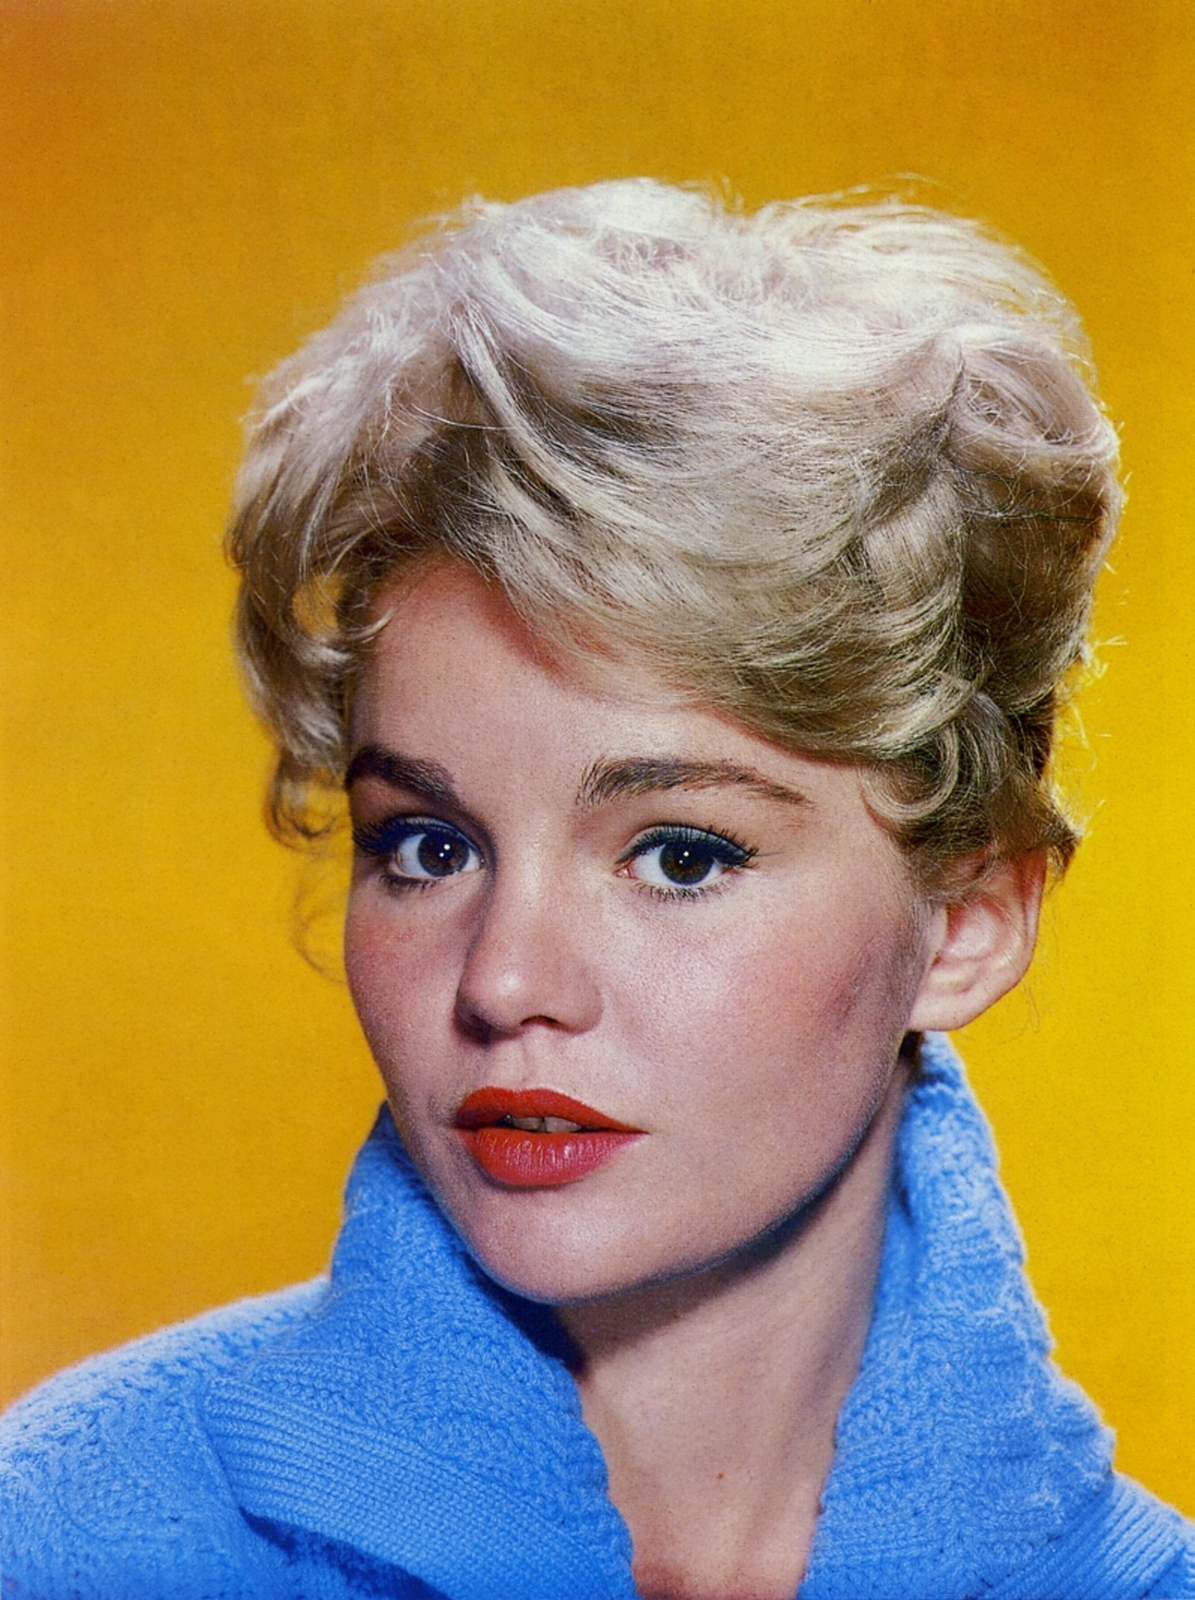 Tuesday Weld on route 66